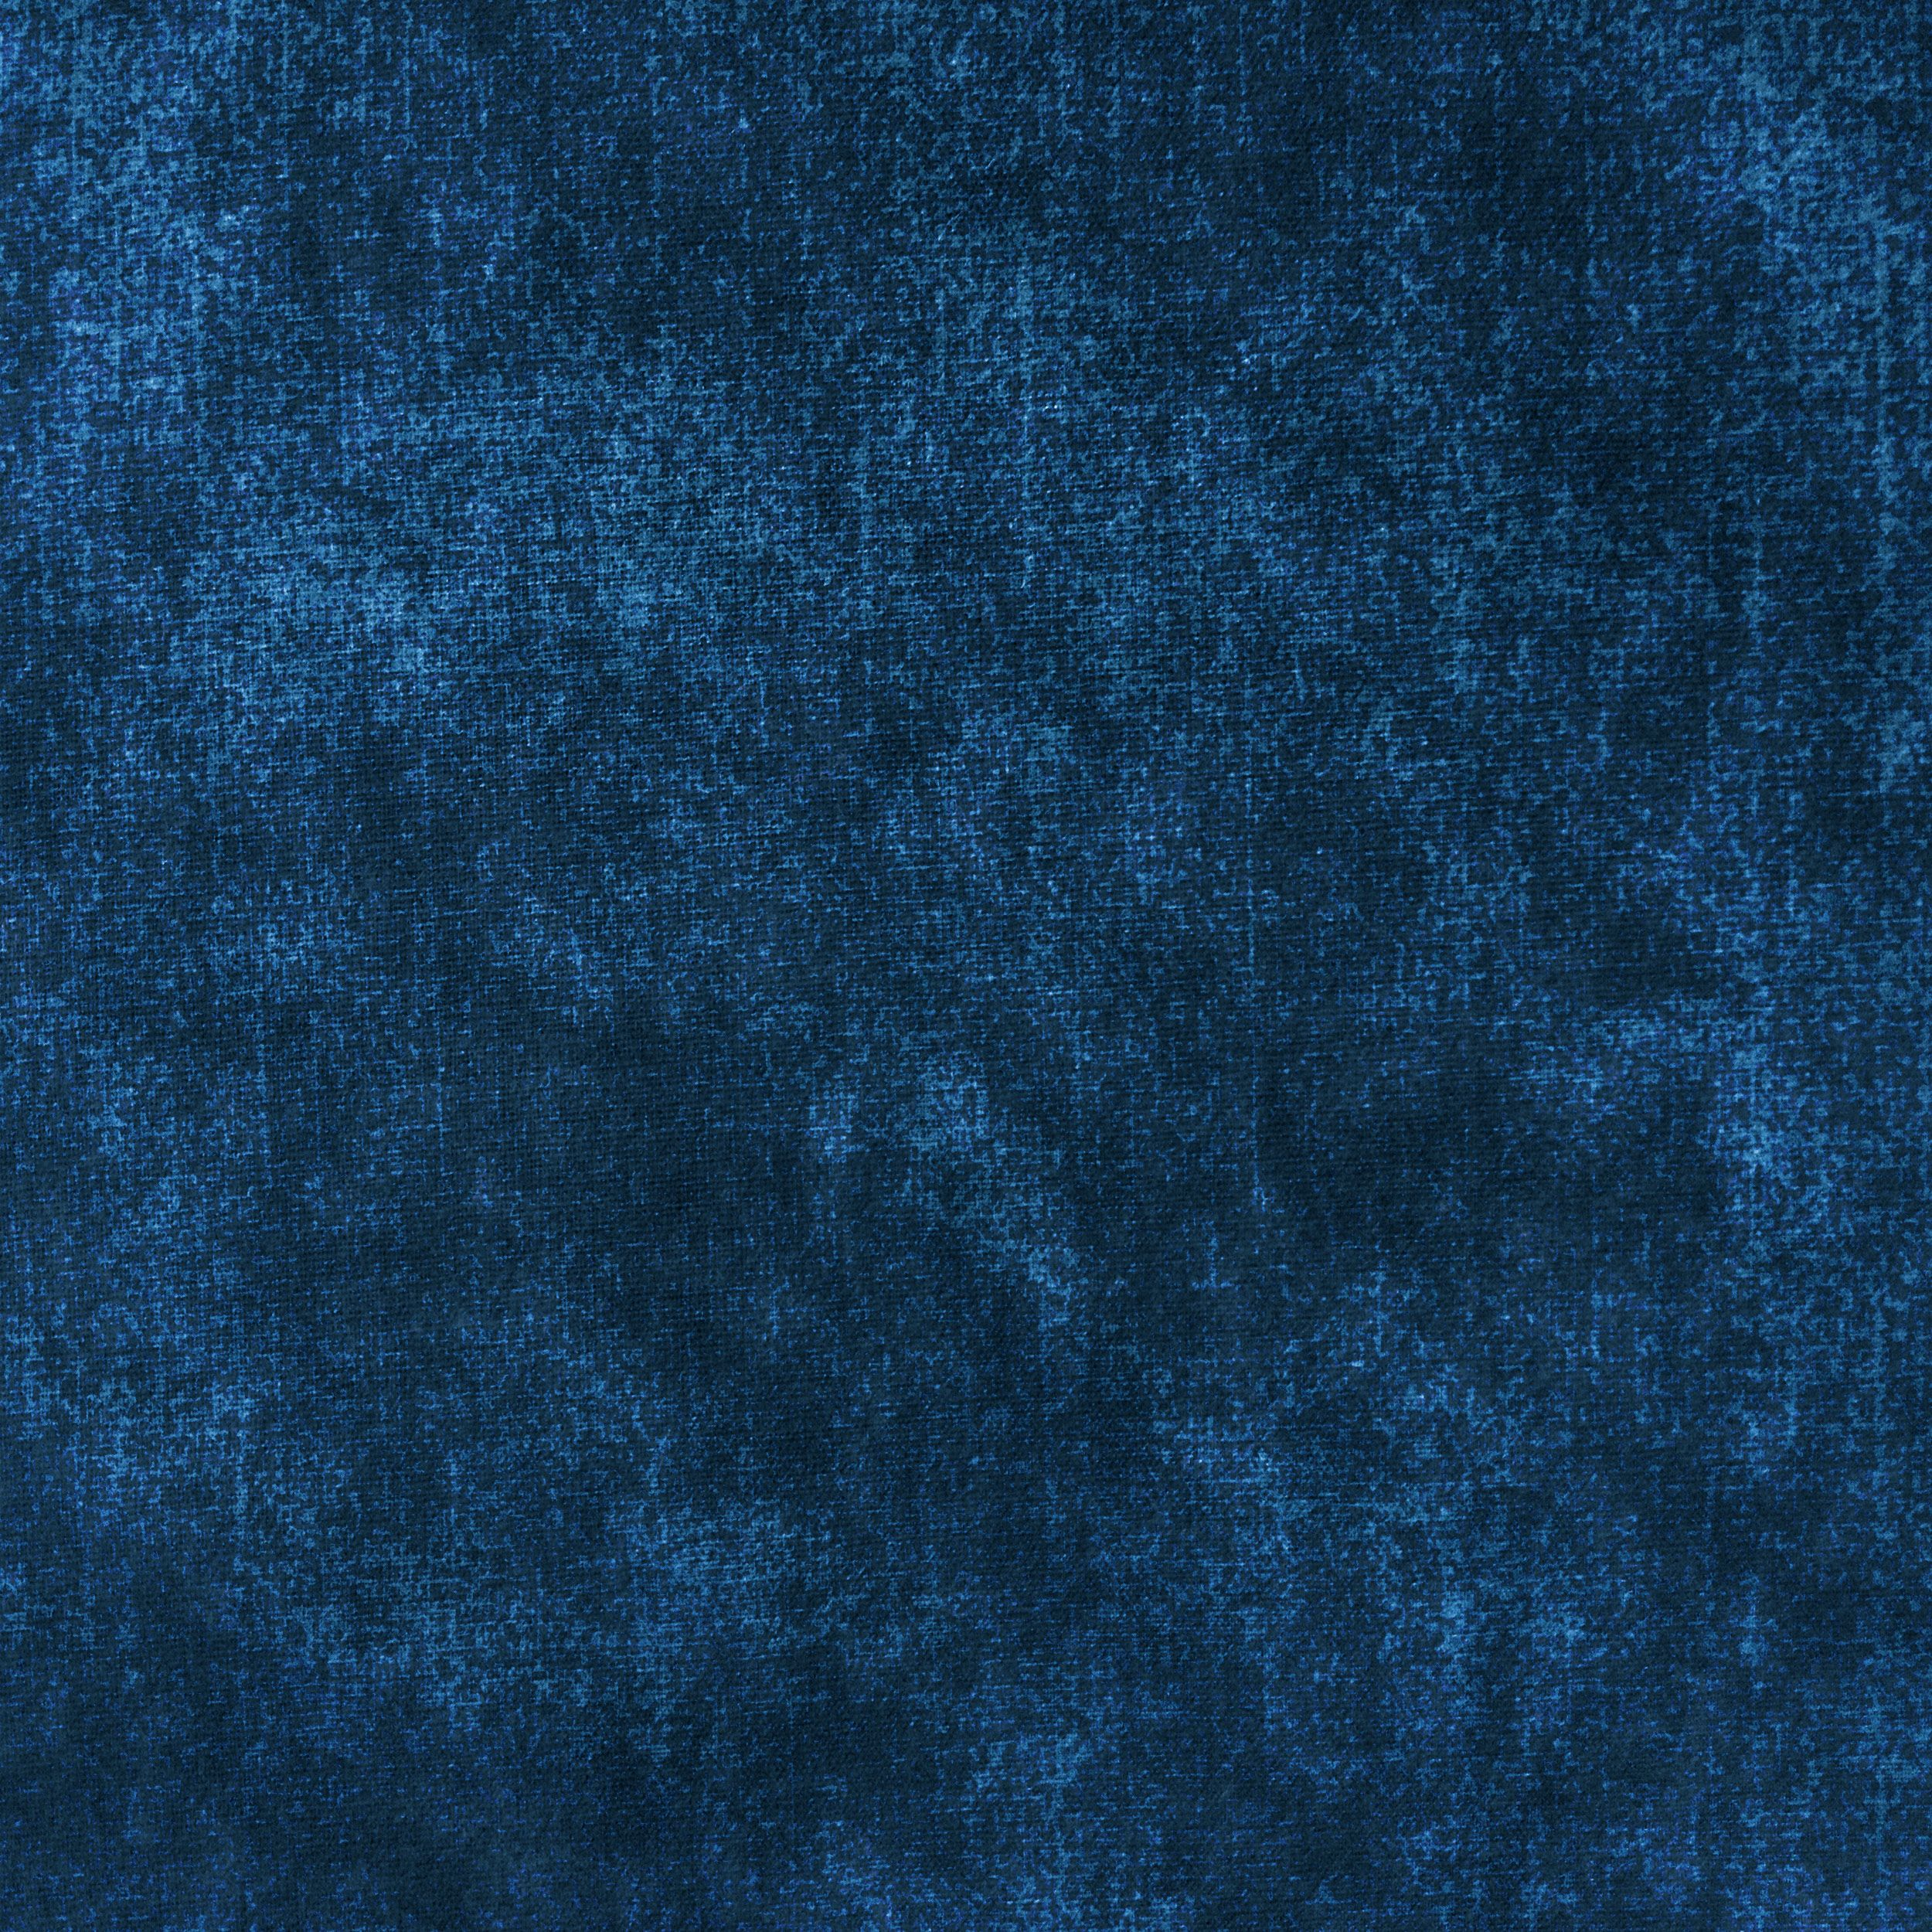 Velvet Recherche Google Textures Fabric Pinterest And Search